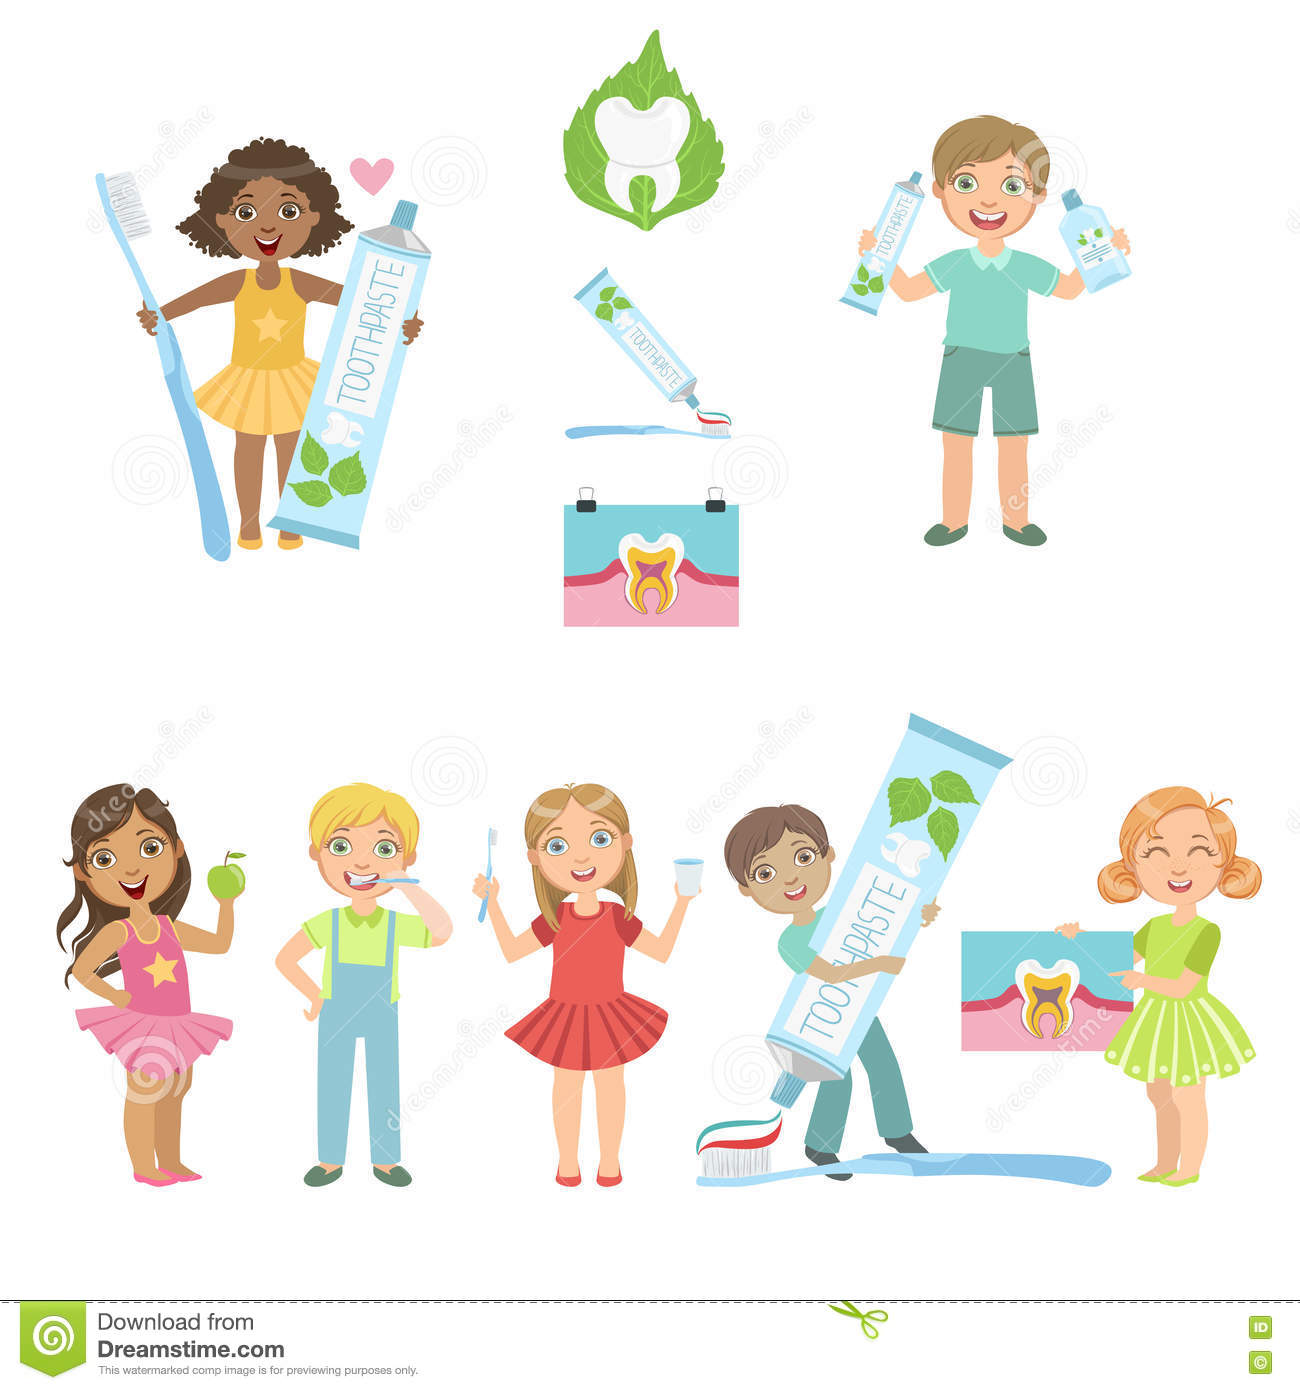 kids-fun-dental-care-poster-simple-design-cute-cartoon-style-isolated-white-background-74175679.jpg